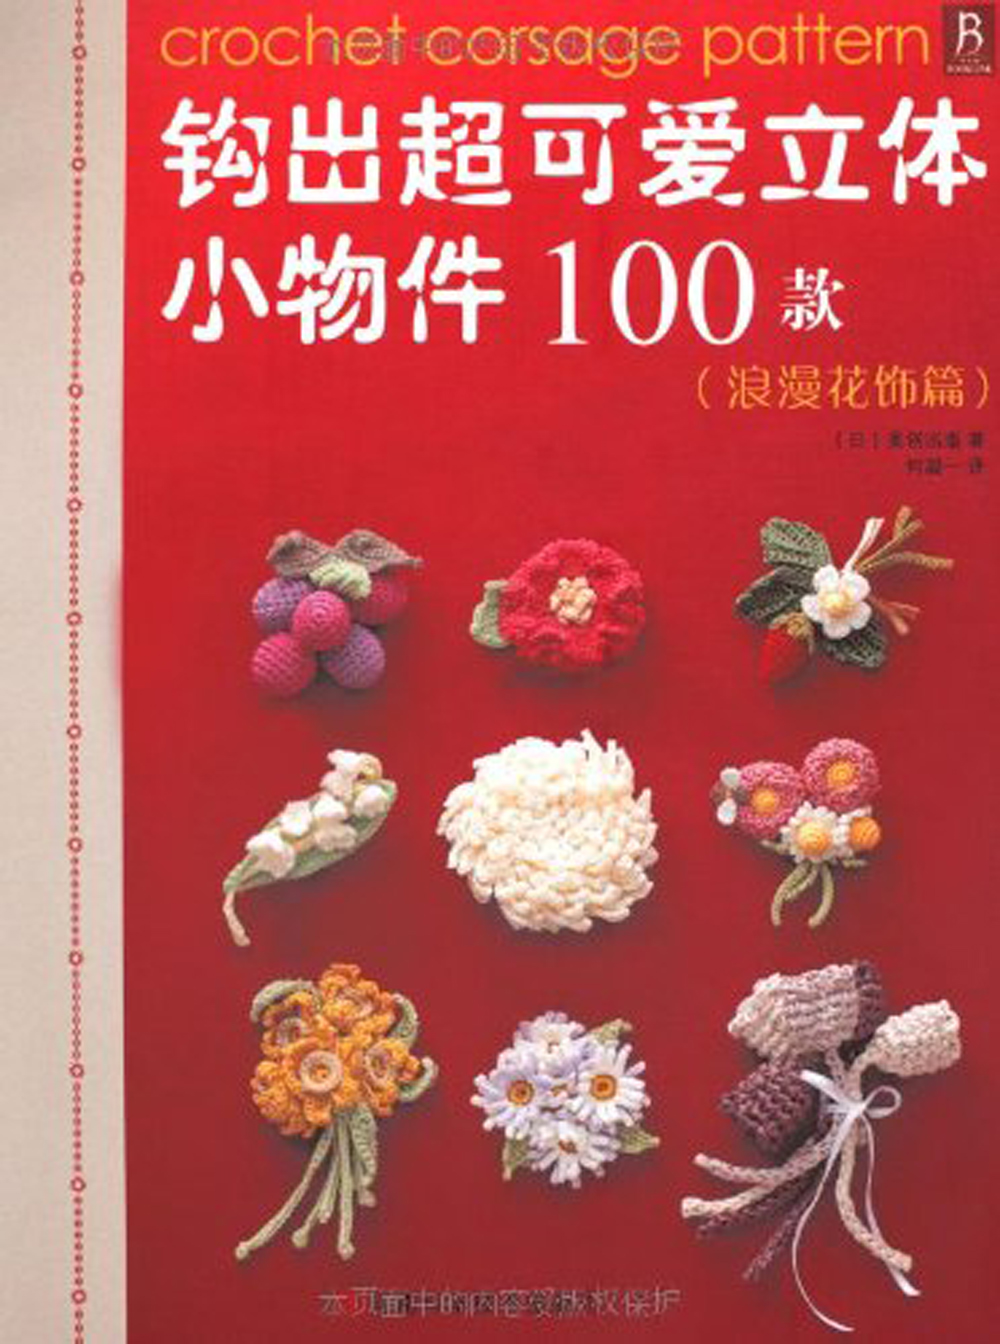 Crochet Corsage Pattern / Weaving super-cute 3d small objects 100 models Chinese knitting book 100 super cute little embroidery chinese embroidery handmade art design book